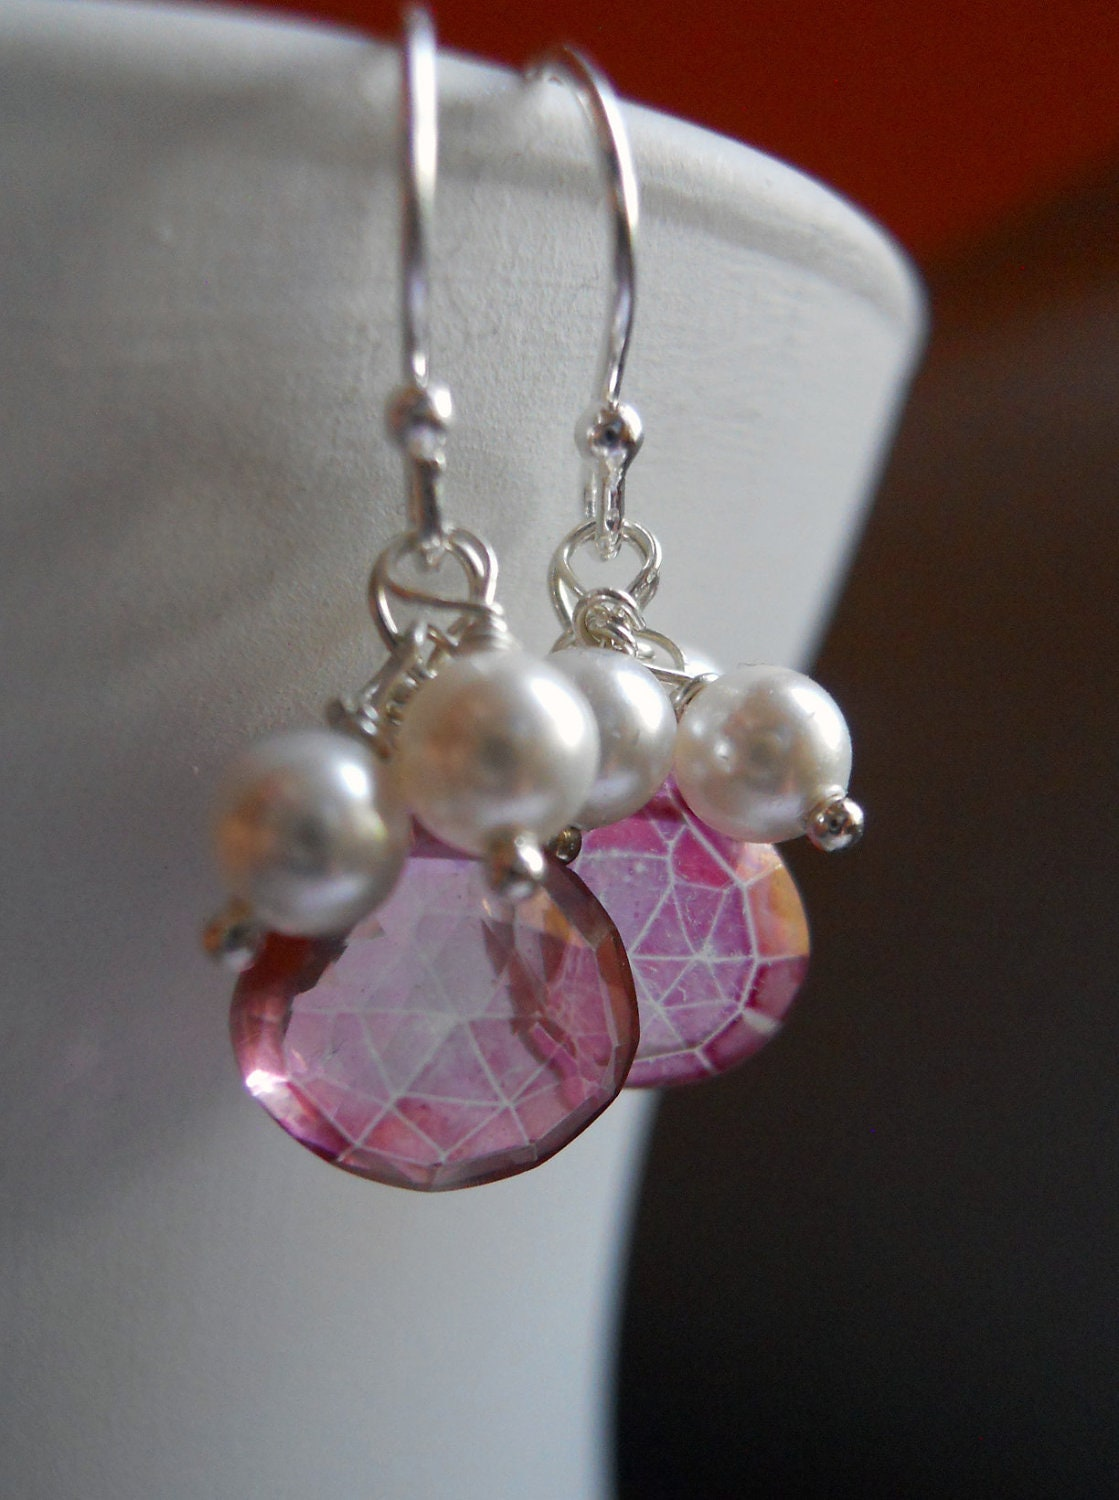 Wedding Bells Pink Mystic quartz with pearls Bridesmaid earrings - $38.00 USD